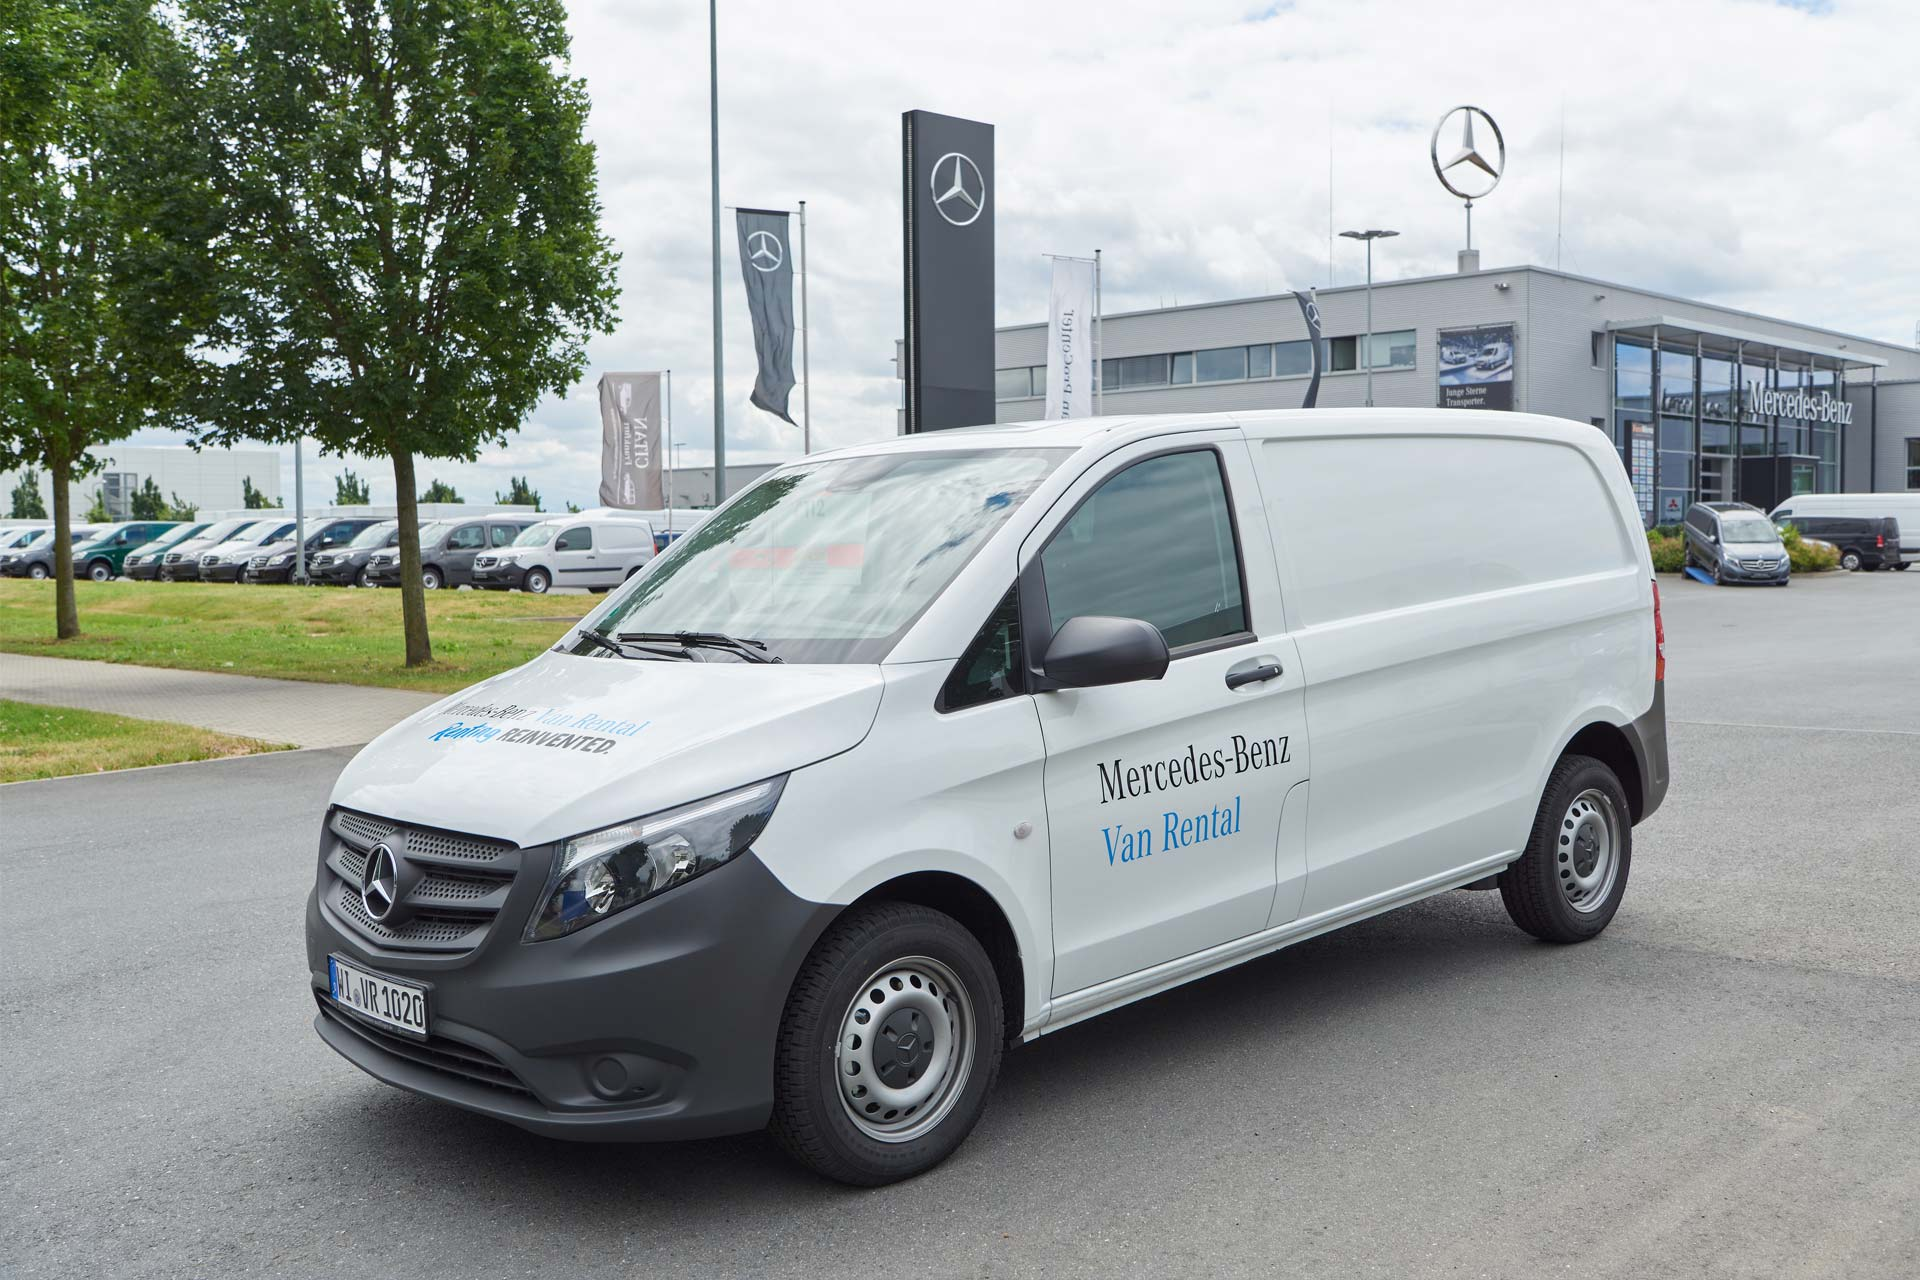 Mercedes benz launches van rental service in germany for Mercedes benz van